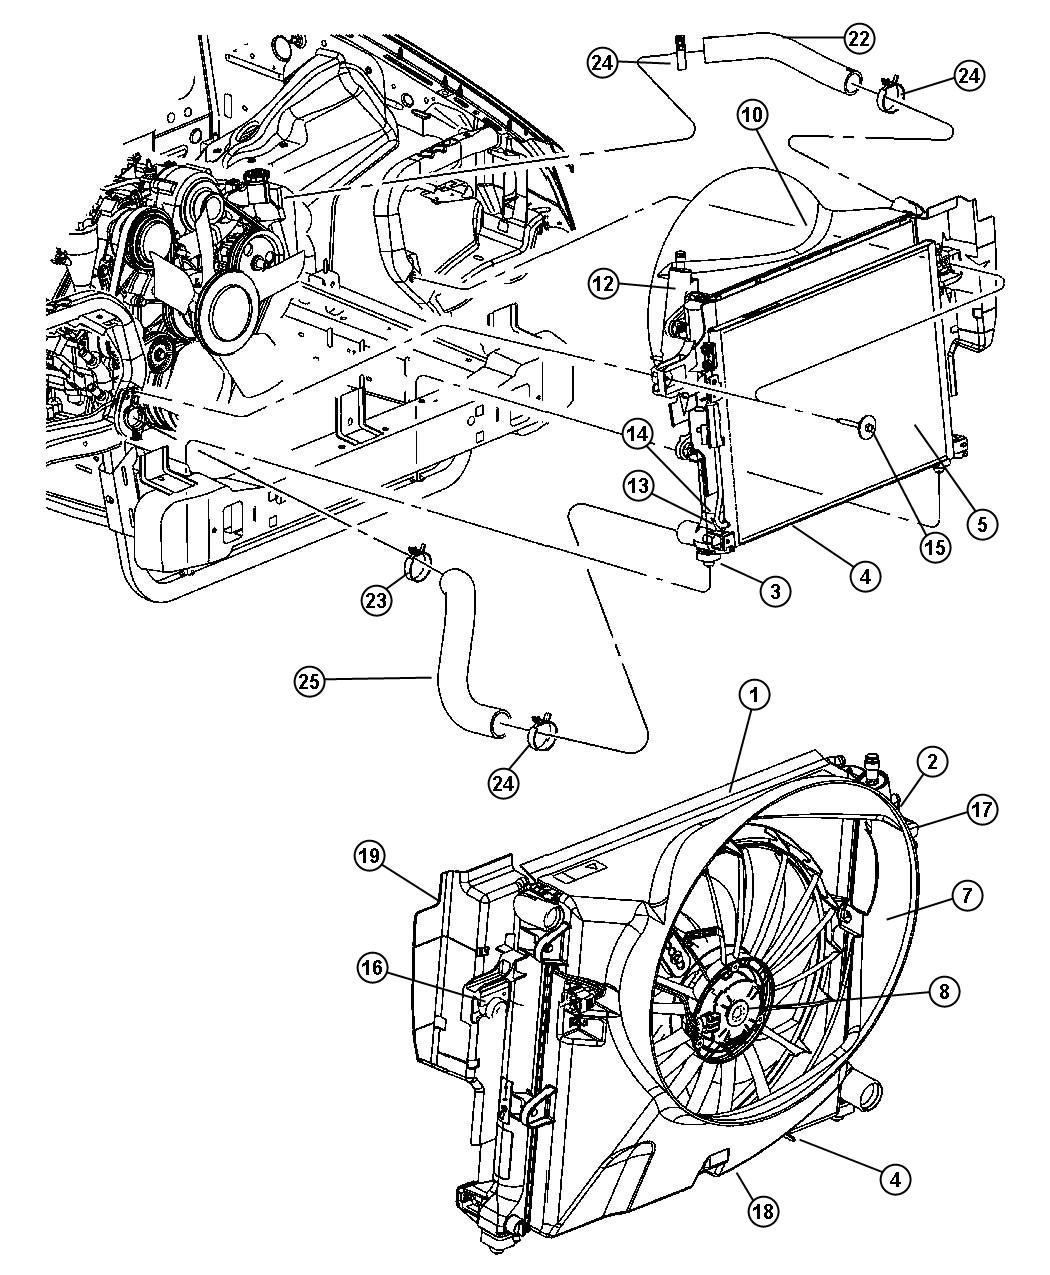 Diagram Radiator and Related Parts 4.7L Engine. for your 2008 Jeep